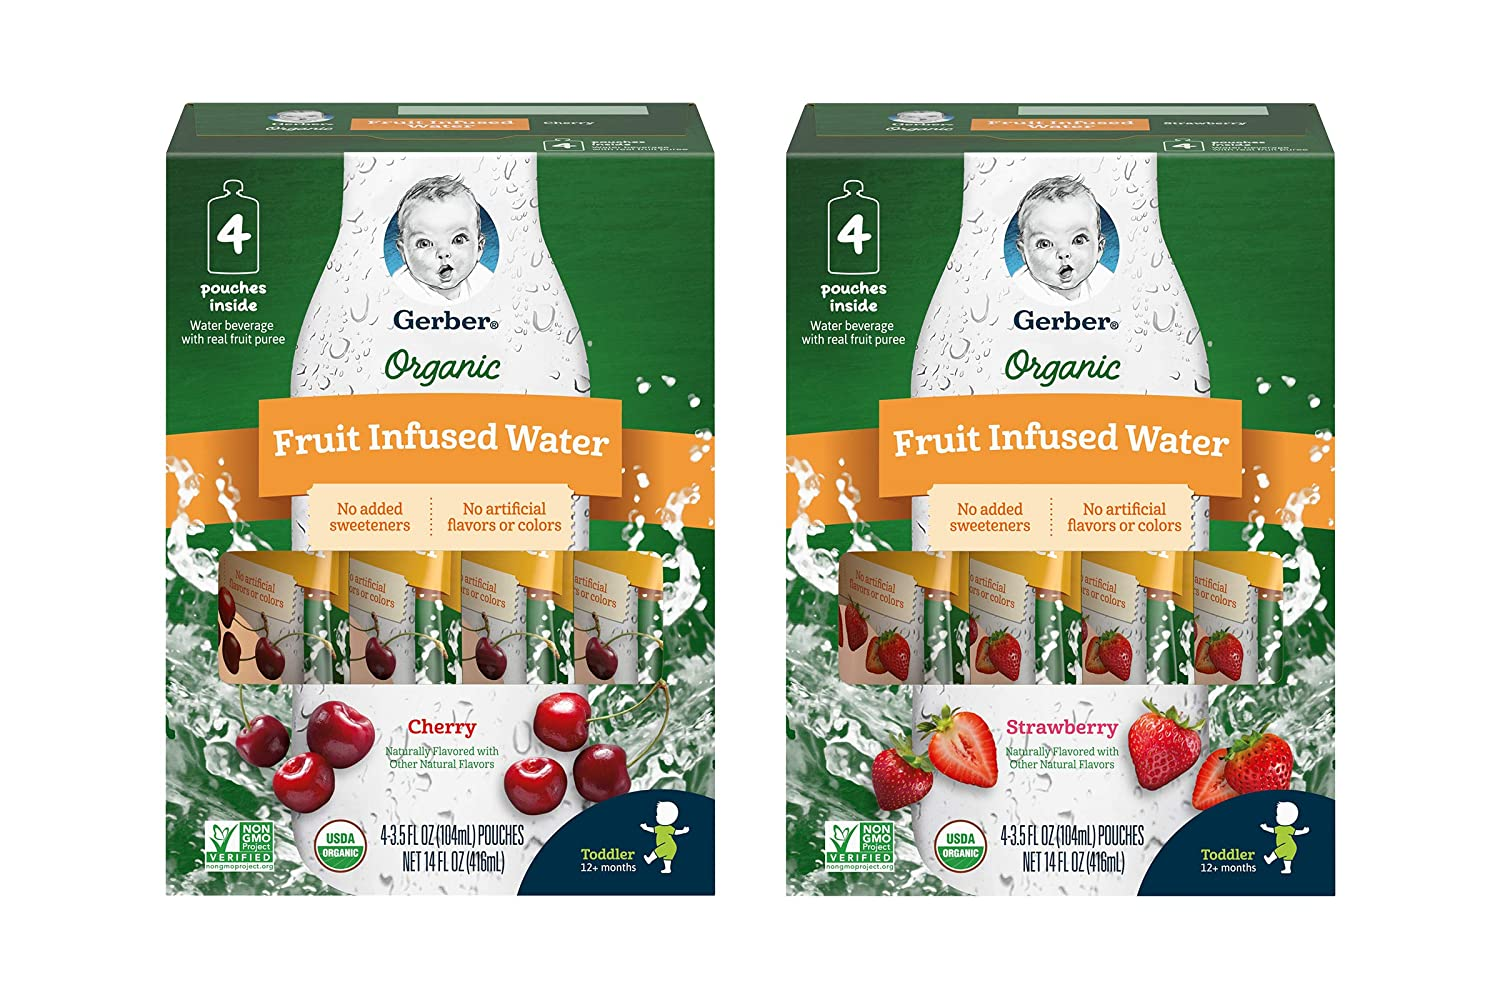 Gerber 1st Foods Gerber Organic Fruit Infused Water Variety Pack - 1 Box Cherry, 1 Box Strawberry - No Added Sweeteners, No Artificial Flavors or Colors - 4 ct/Box (Pack Of 2 Boxes), 2Count